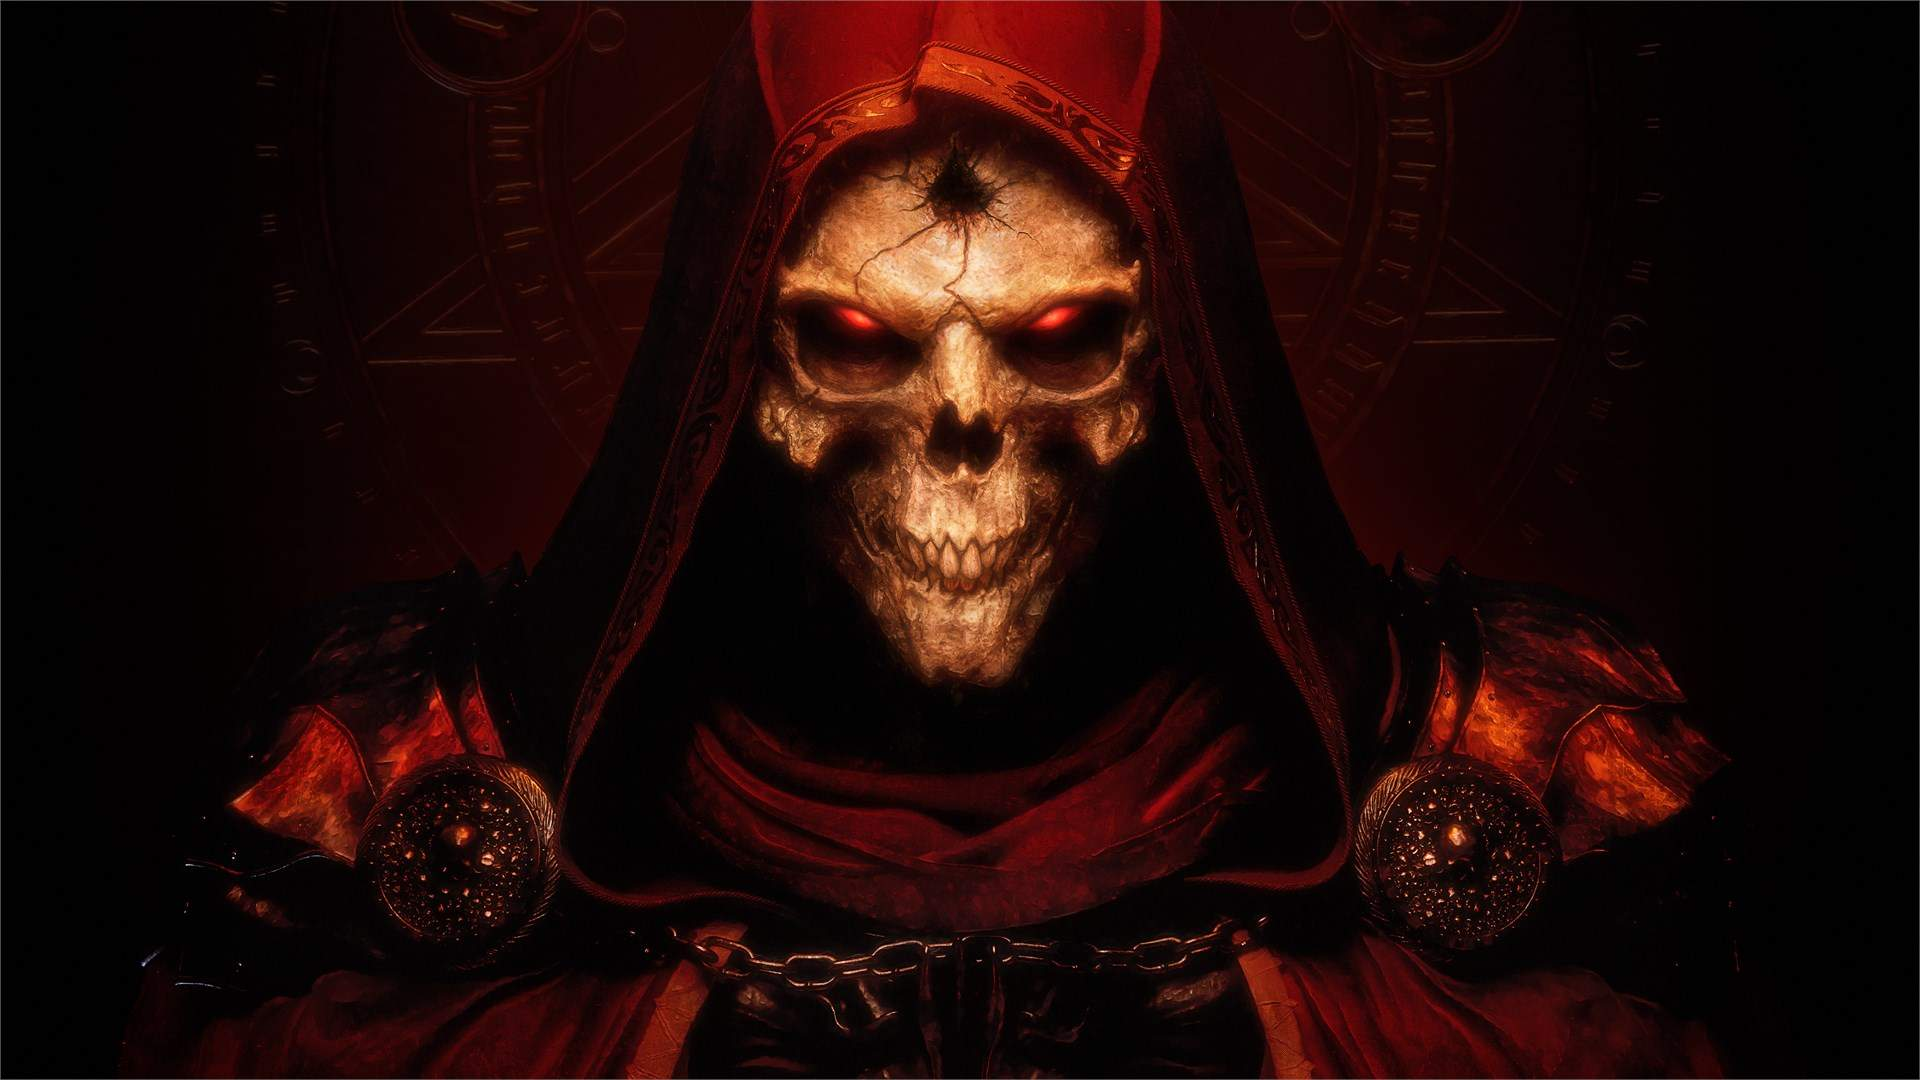 Diablo II: Resurrected Is Now Available For Xbox One And Xbox Series X|S 1